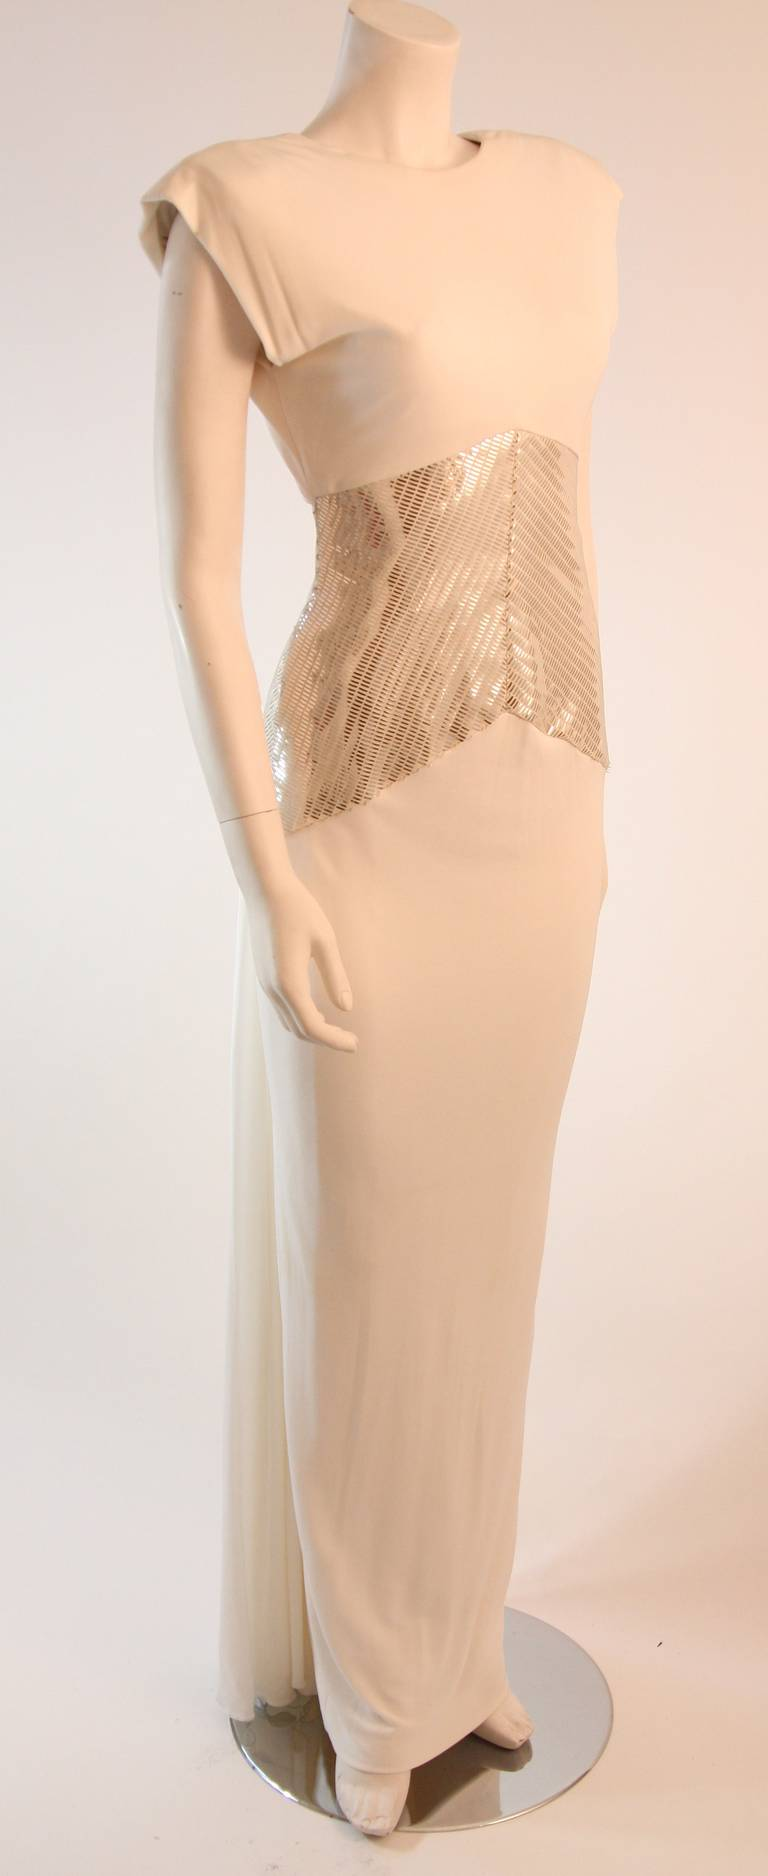 Vicky Tiel Futurism White Column Gown with Metallic Waist Detail 4-6 2